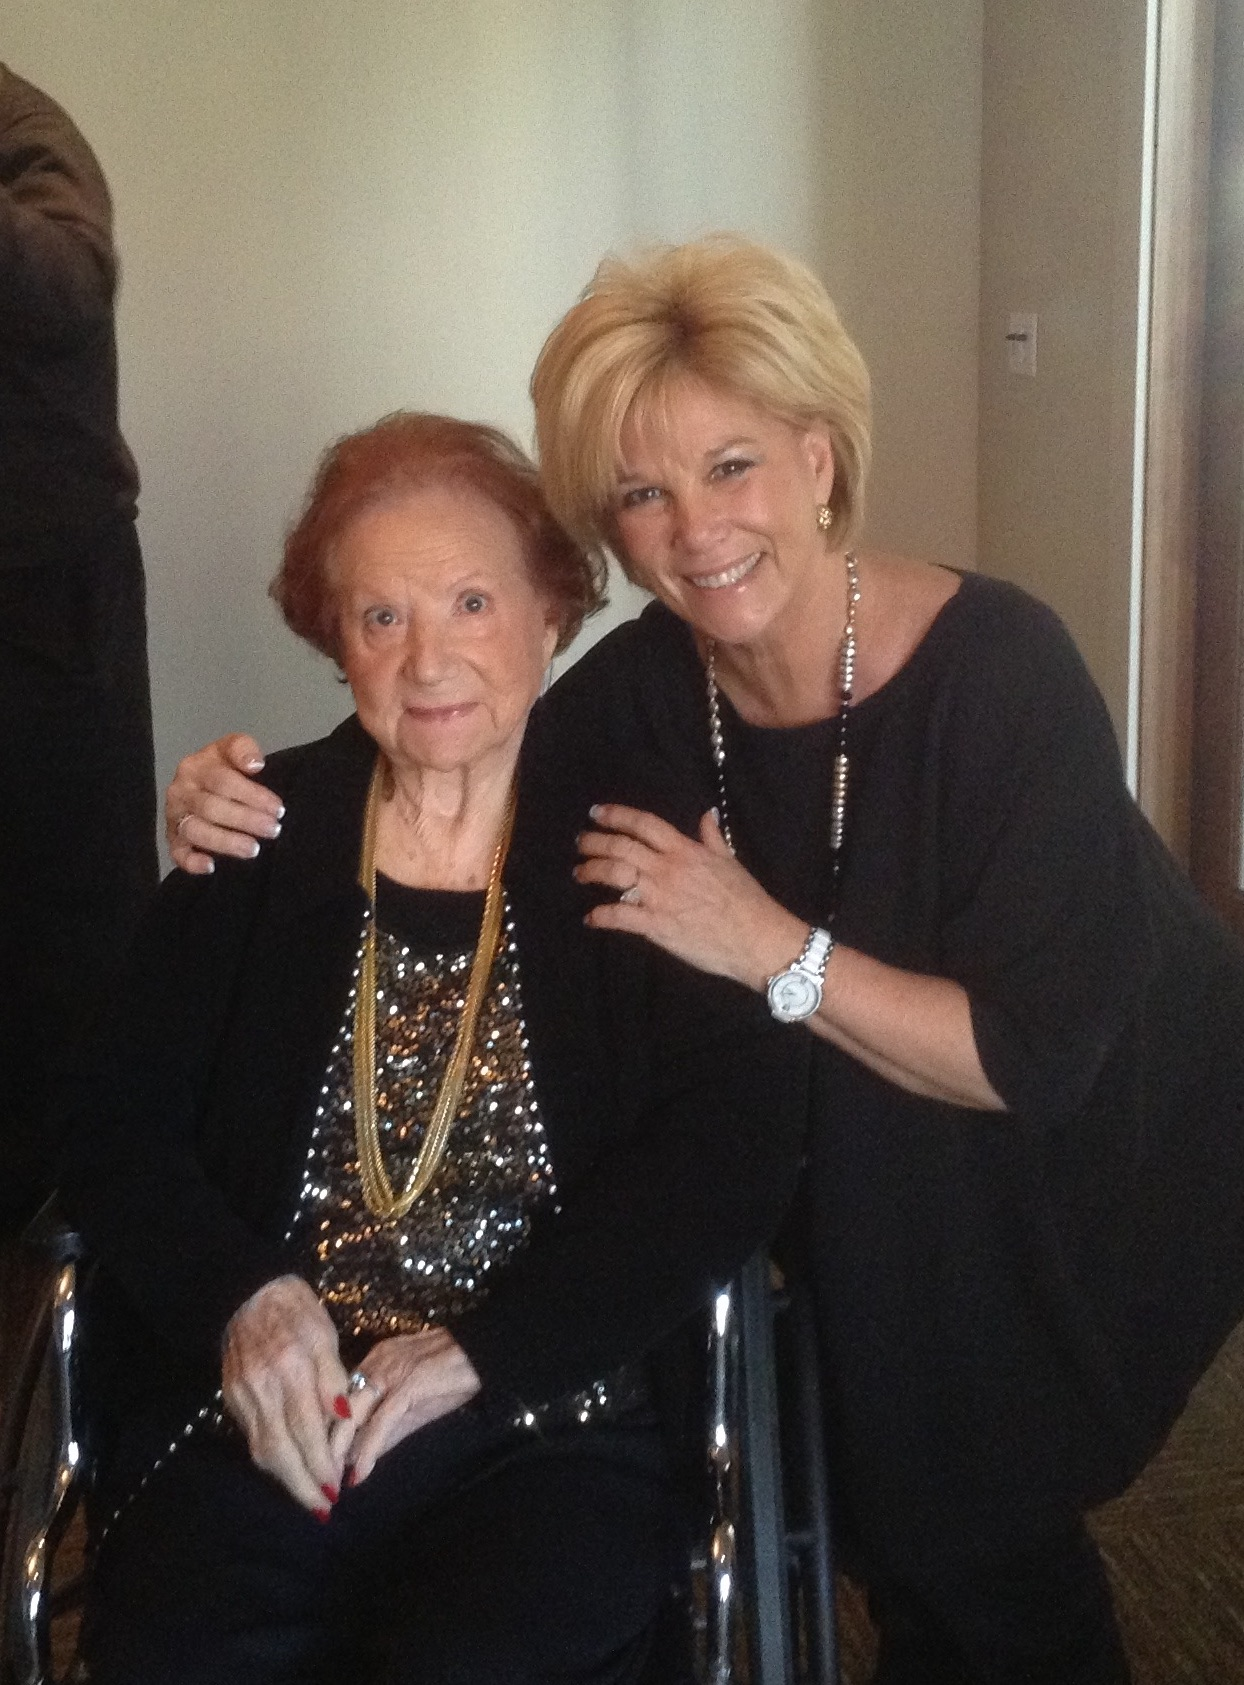 Joan Lunden and her mother